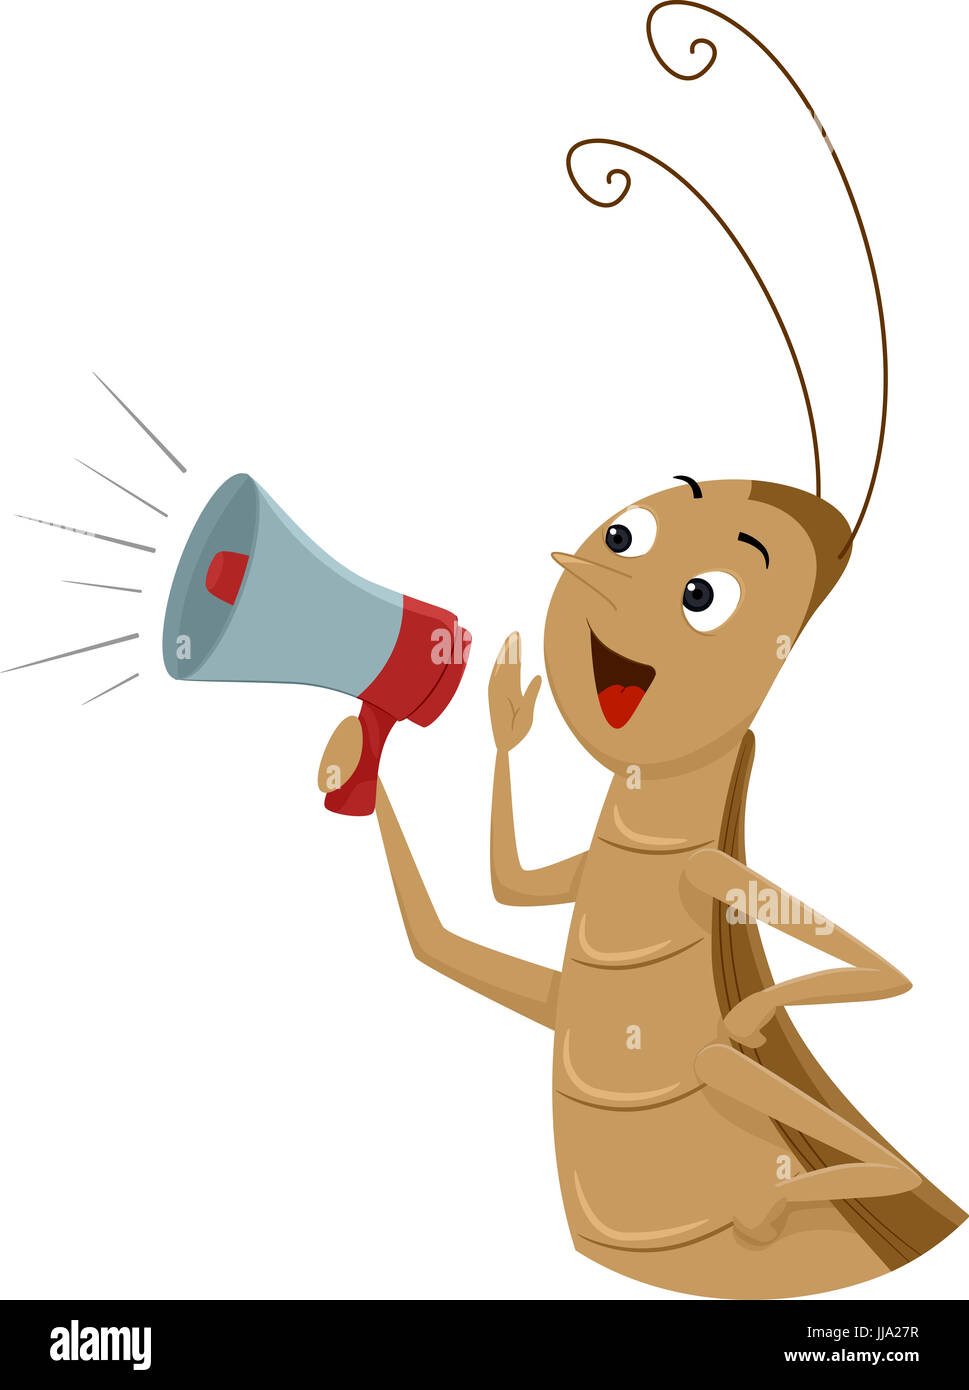 Animal Mascot Illustration Featuring a Cricket Holding a Megaphone Cheering Loudly in the Background - Stock Image